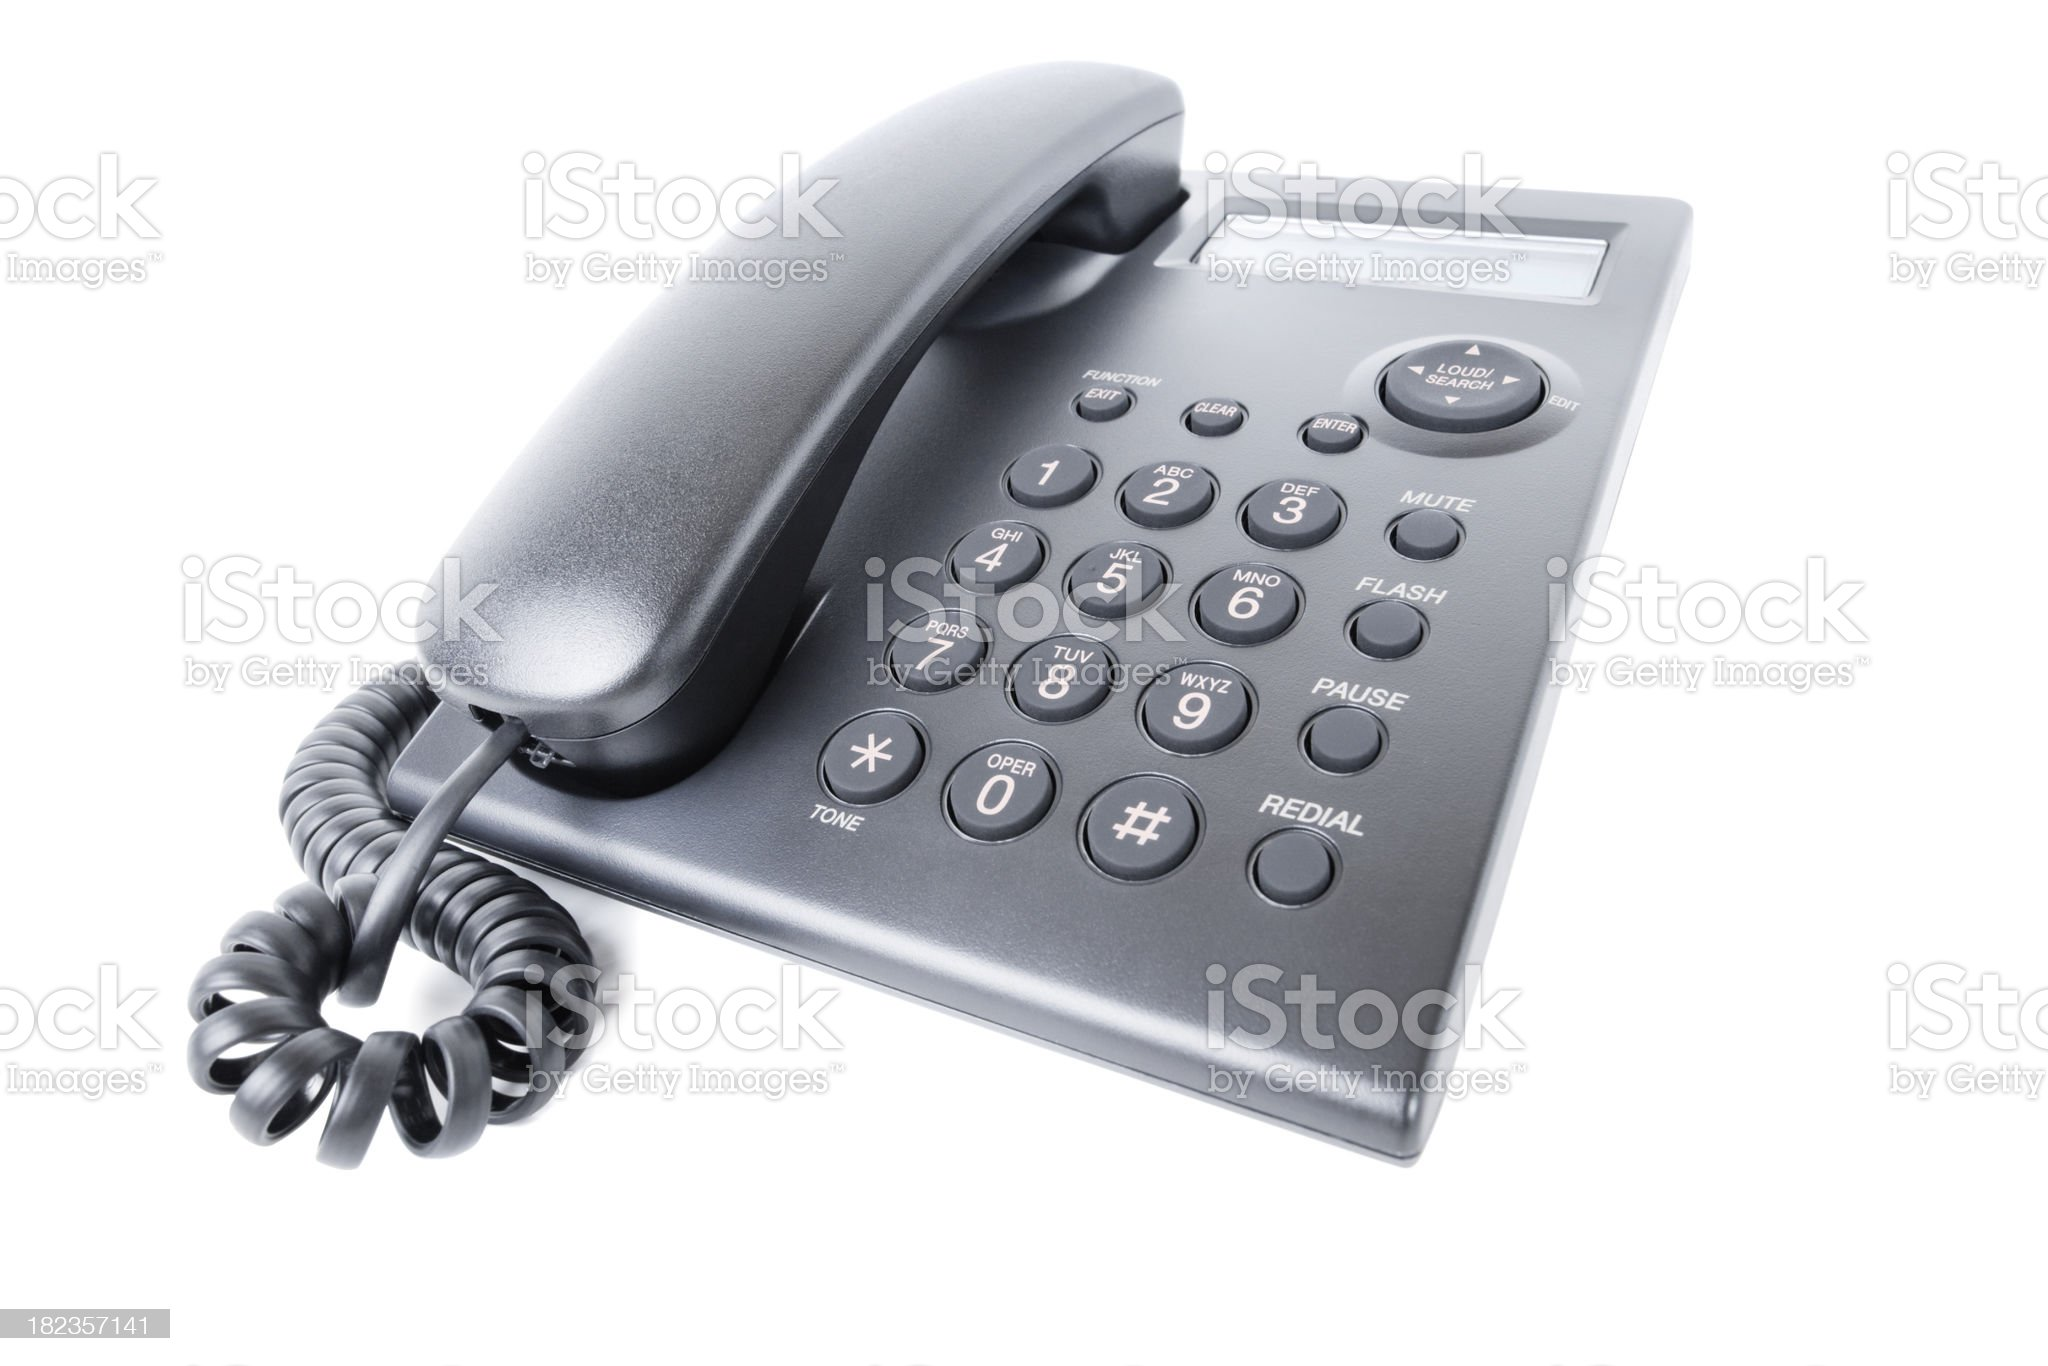 Black Phone Business Office Corporate Corded Telephone royalty-free stock photo